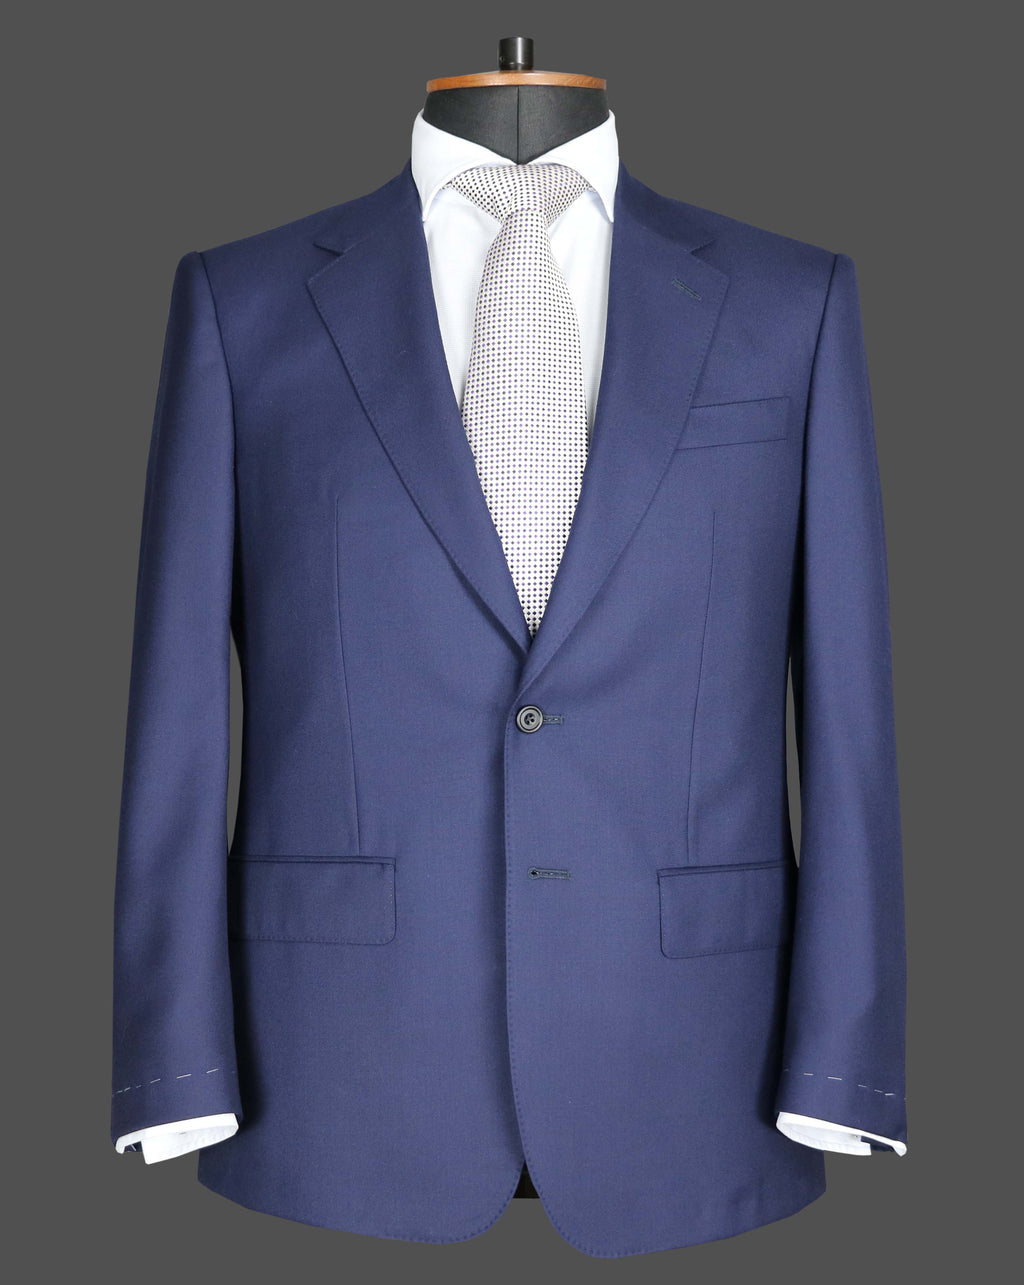 TLA065 - Plain Navy Suit